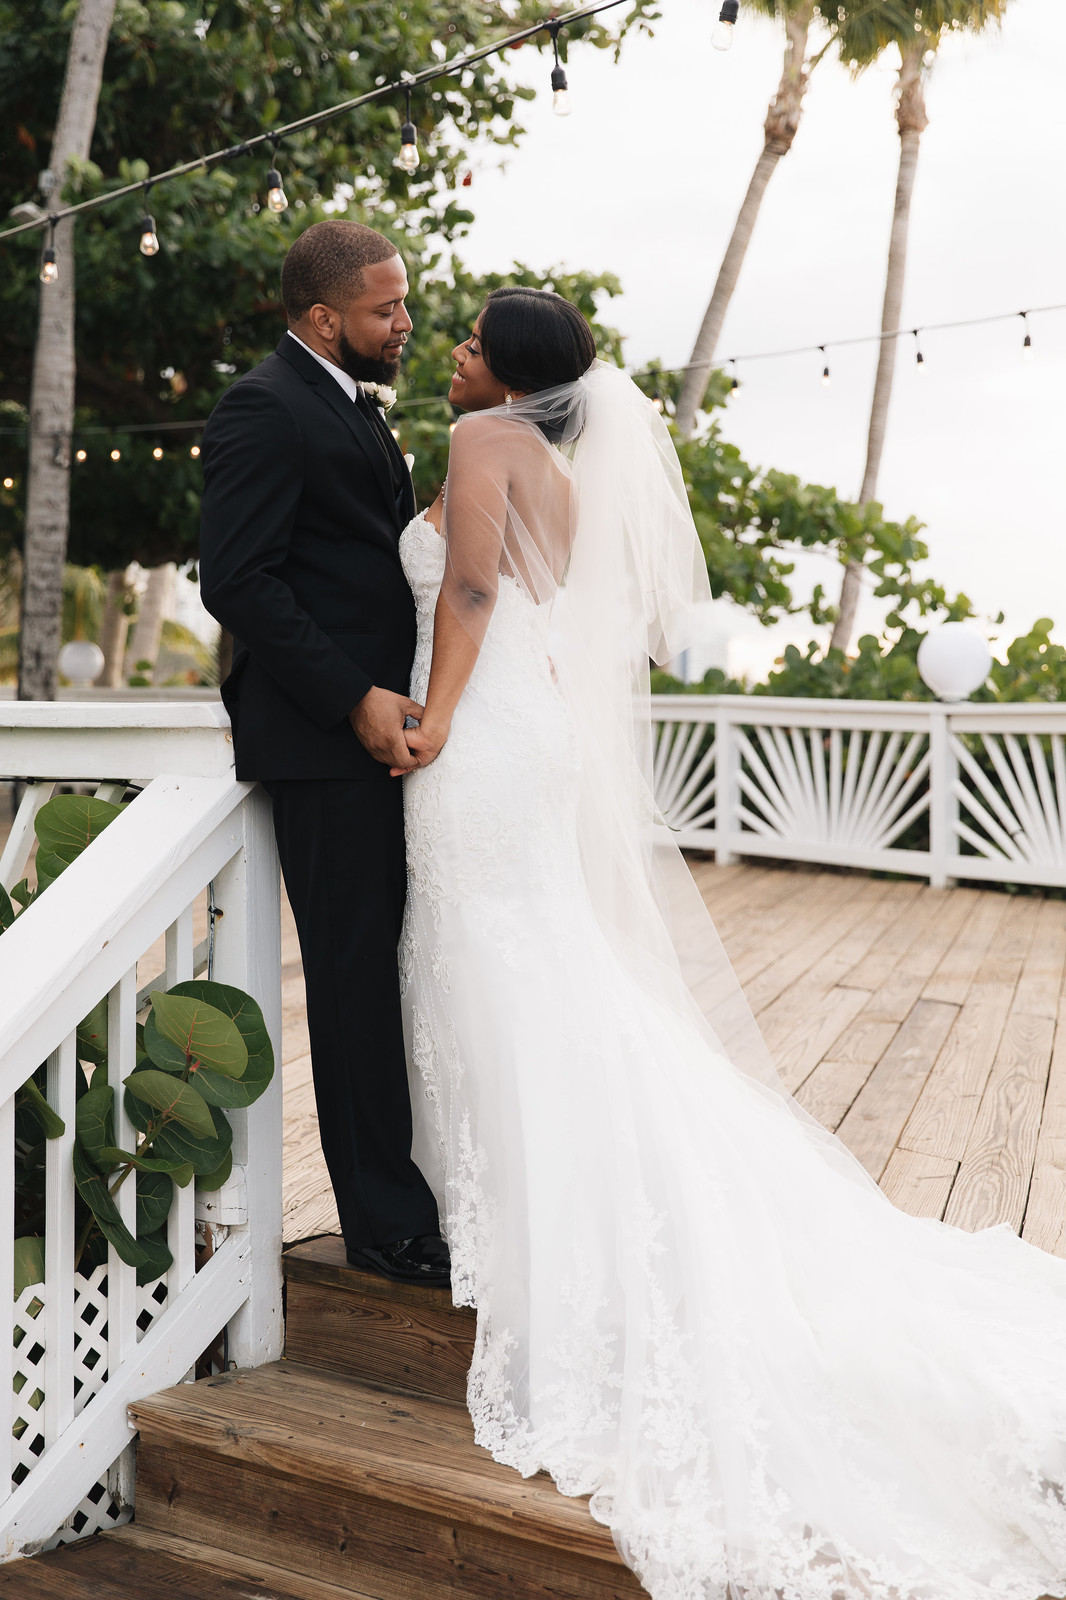 Puerto Rico Wedding.Puerto Rico Wedding Photographer